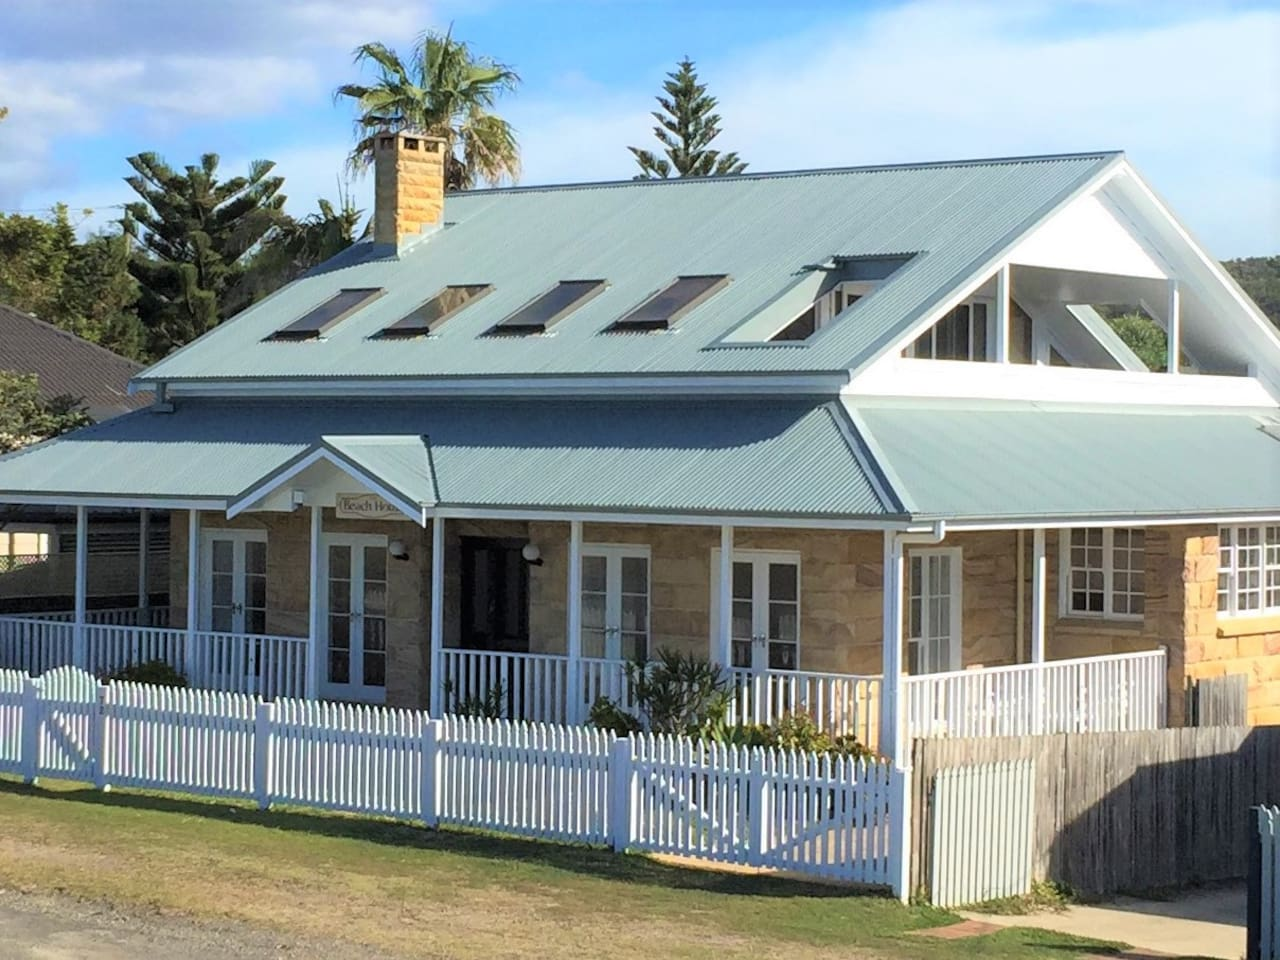 The Beach House with verandah overlooking the beach - 50m to the flags!